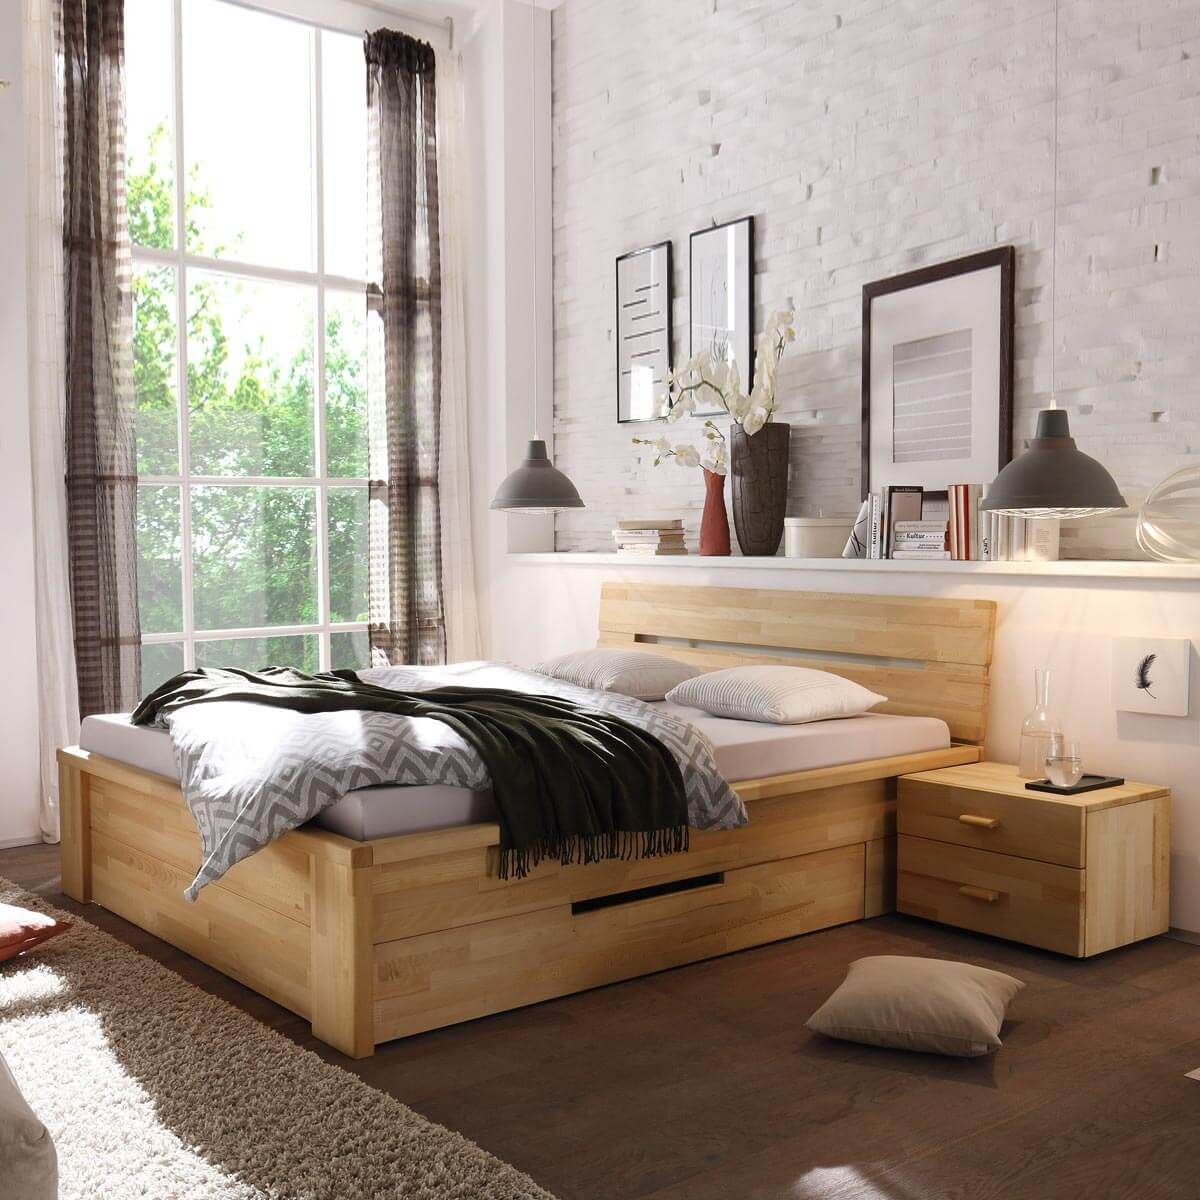 bett roros 160x200 mit schubladen in kernbuche massiv. Black Bedroom Furniture Sets. Home Design Ideas